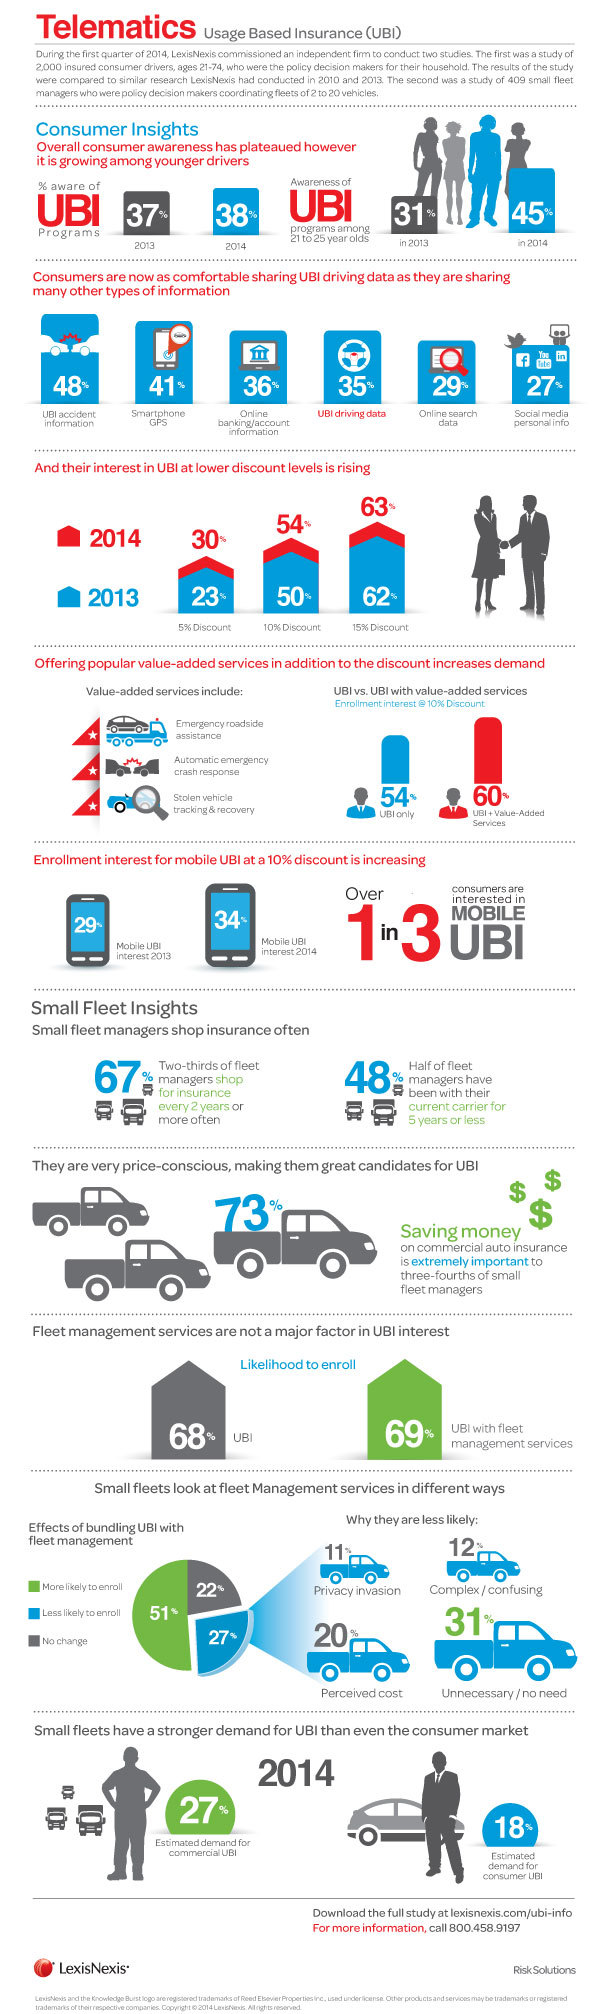 Lexisnexis Awesome Telematics Infographic From News Release Today